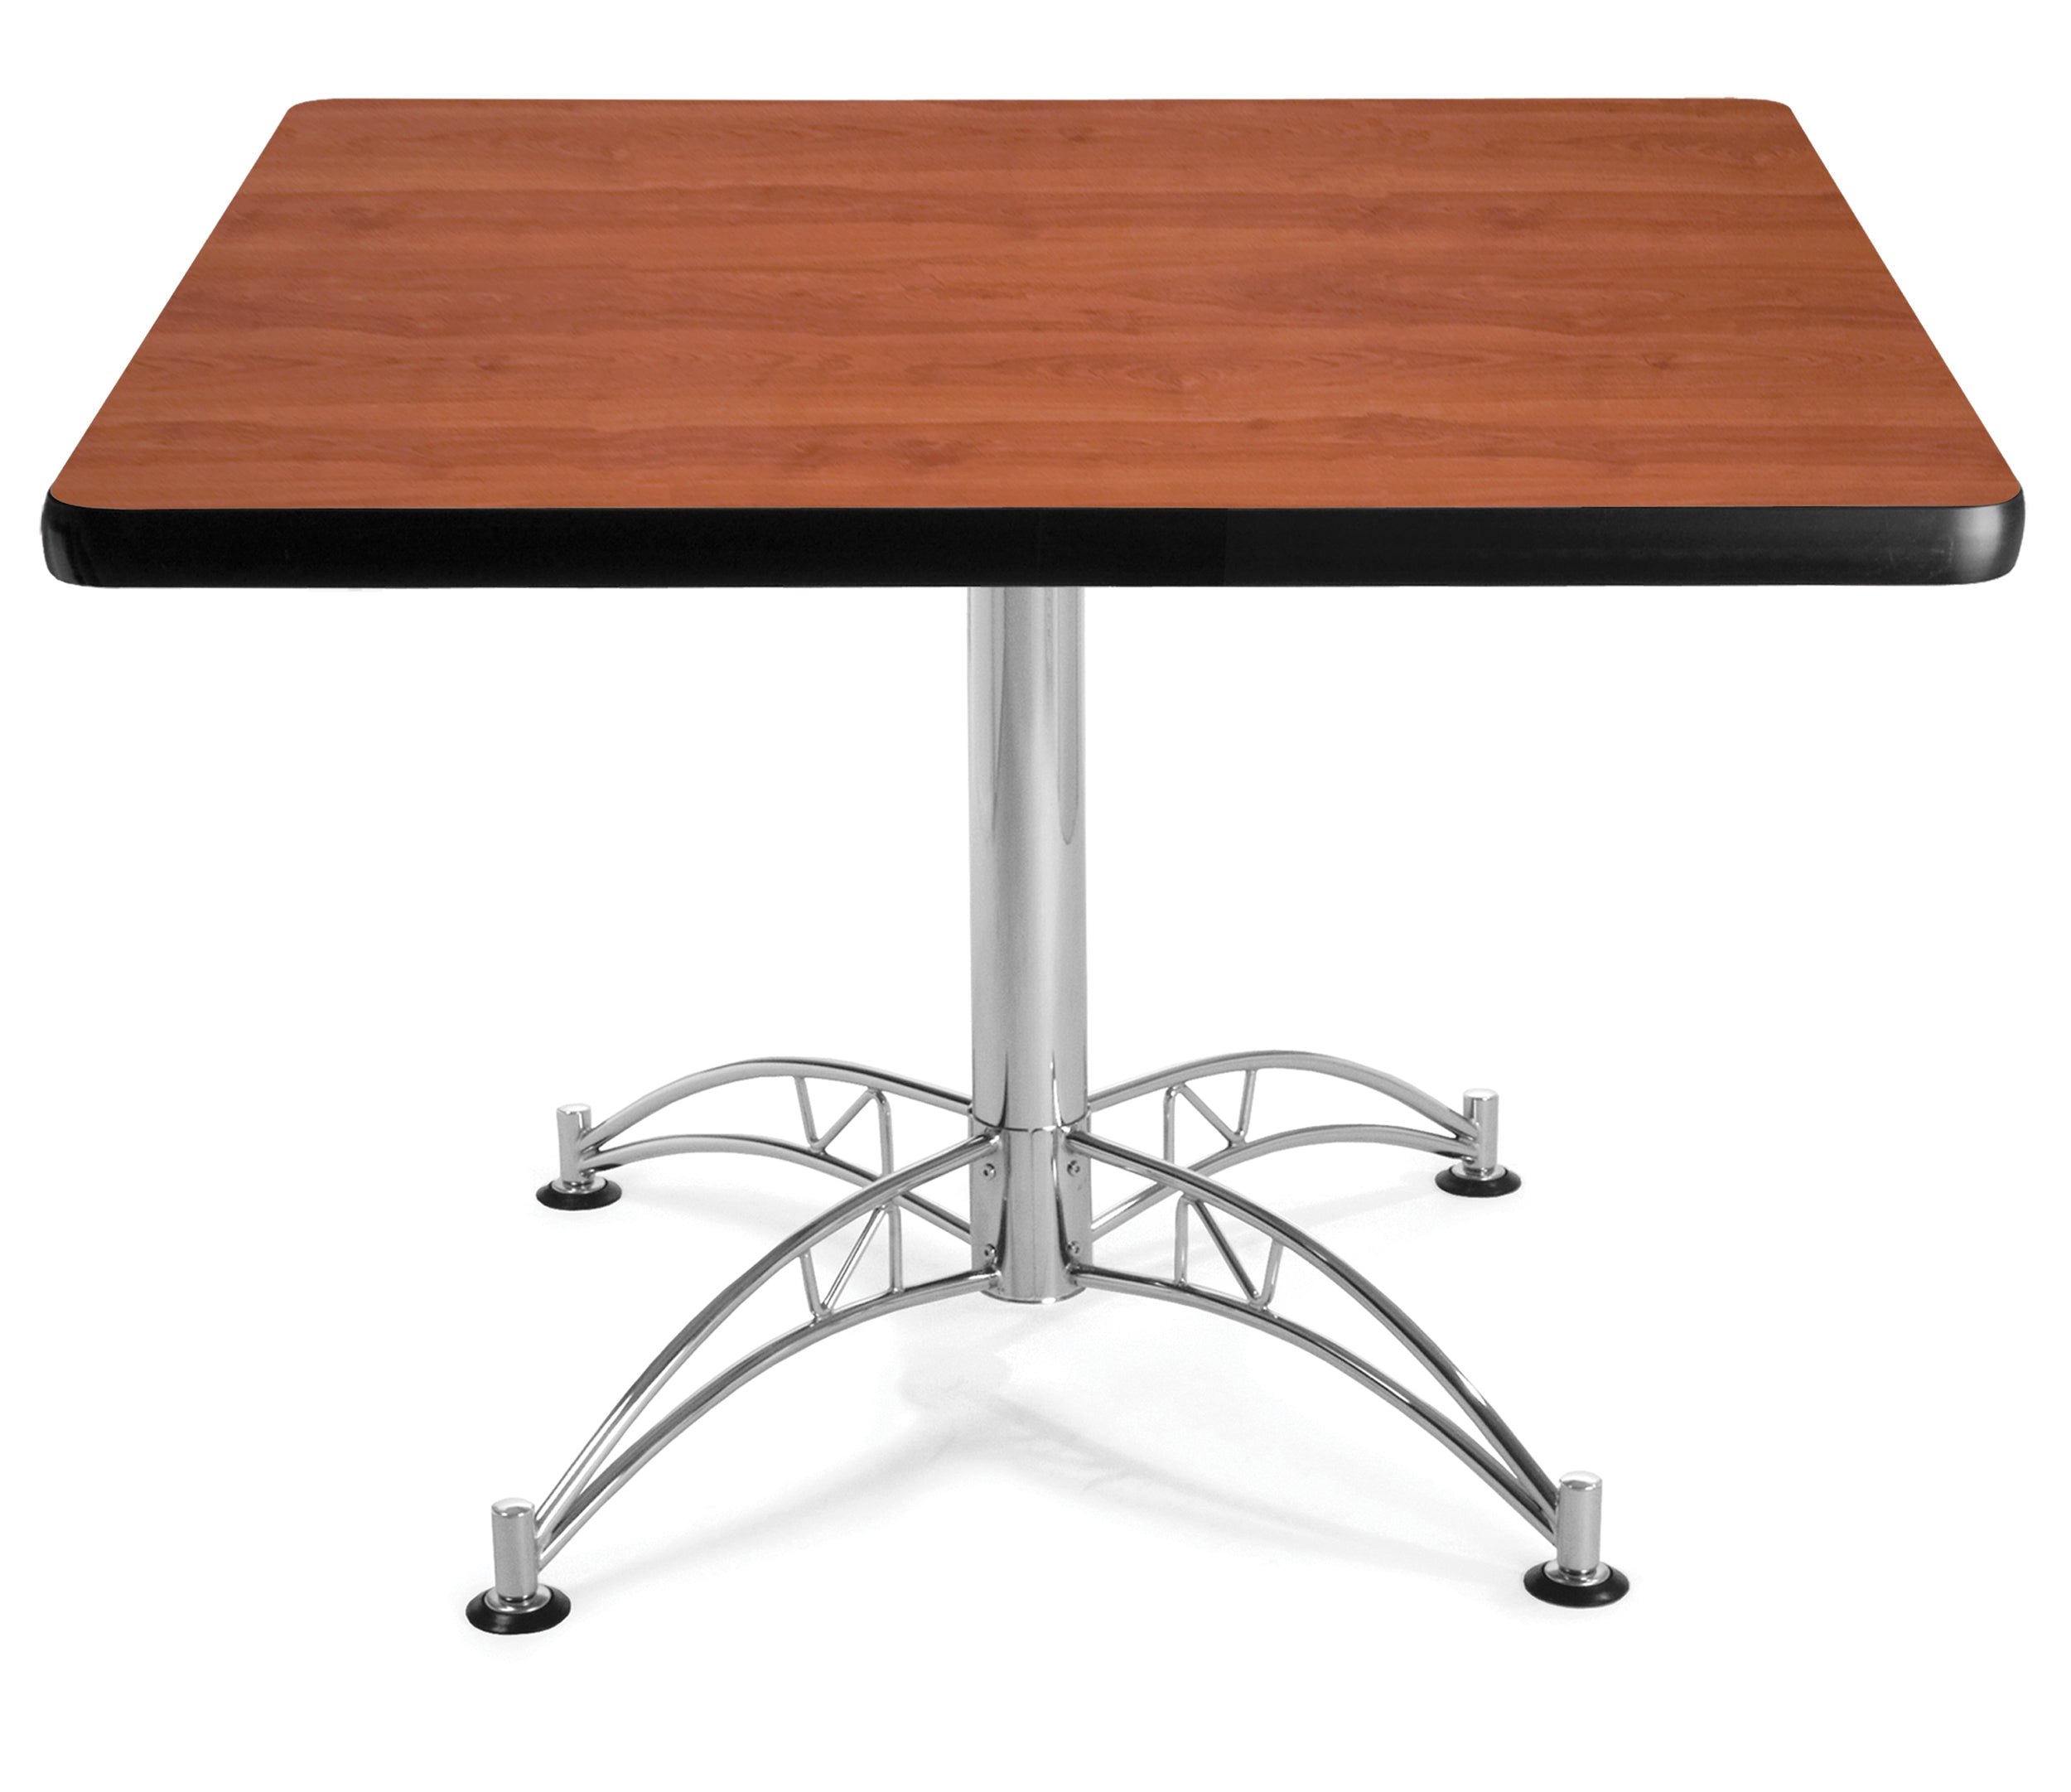 Ofminc Model LT42SQ 42 Inch Square Multi-Purpose Table